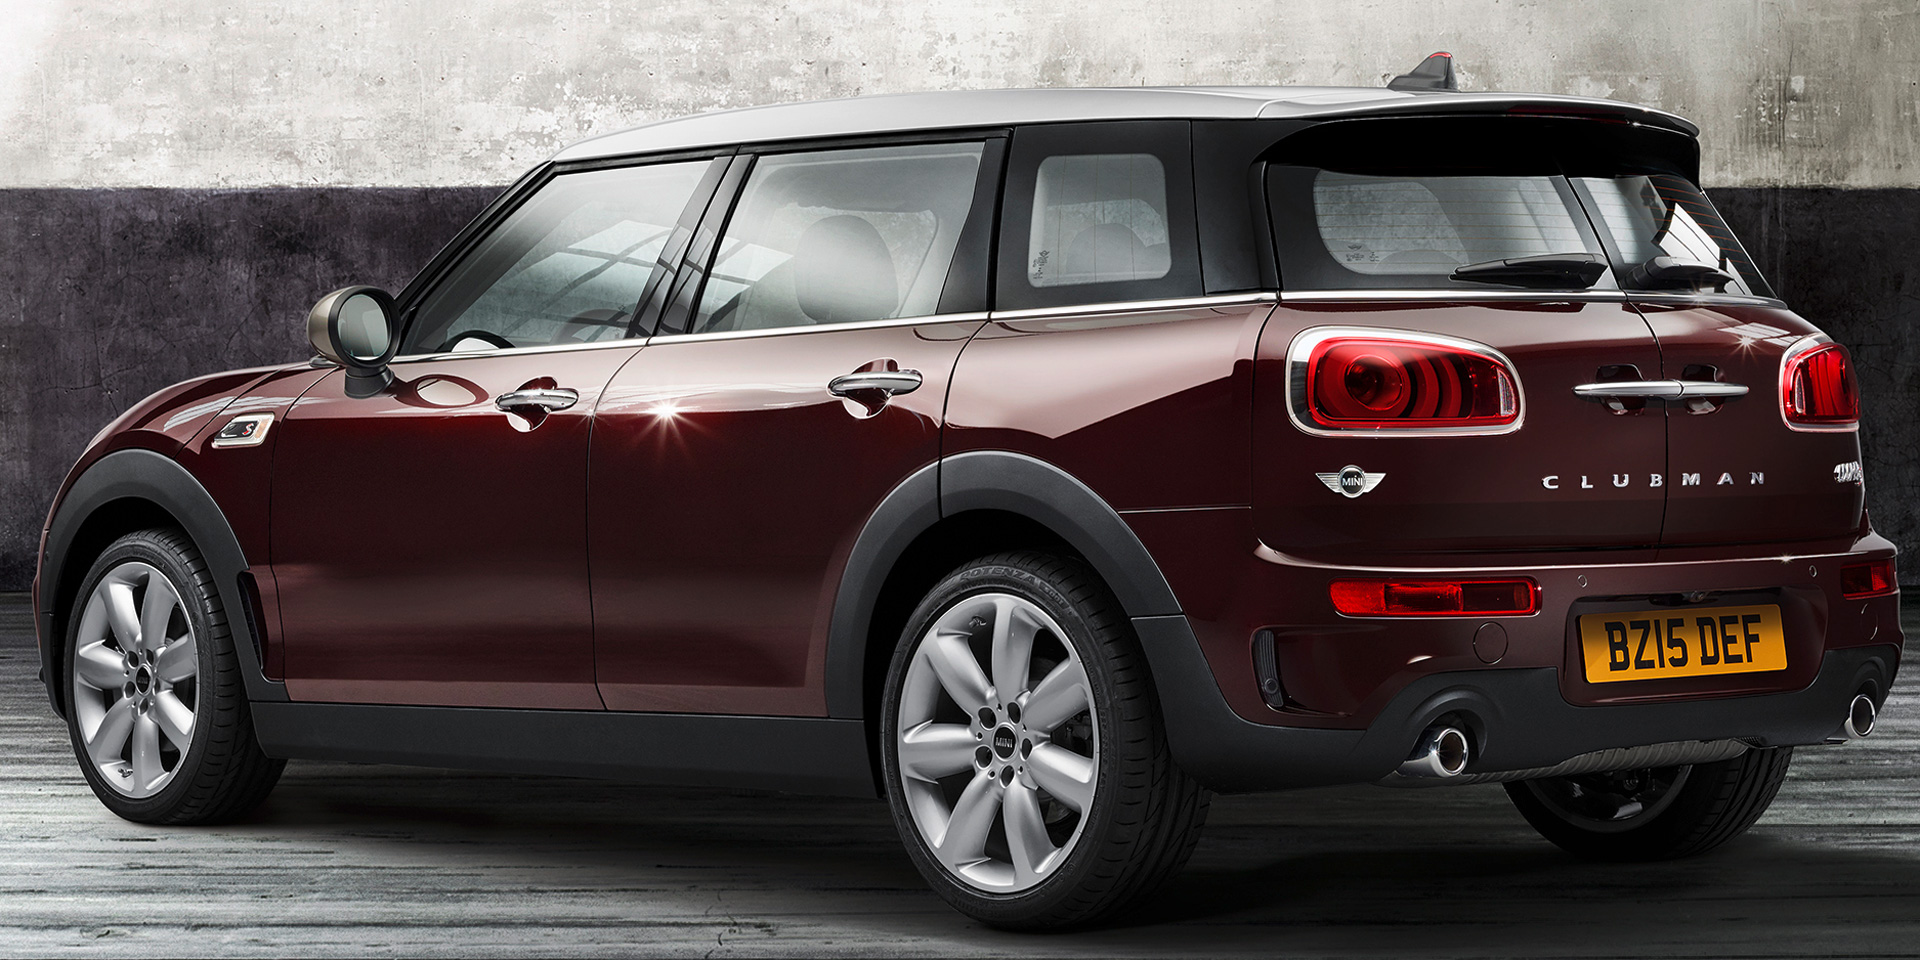 2018 mini clubman vehicles on display chicago auto show. Black Bedroom Furniture Sets. Home Design Ideas